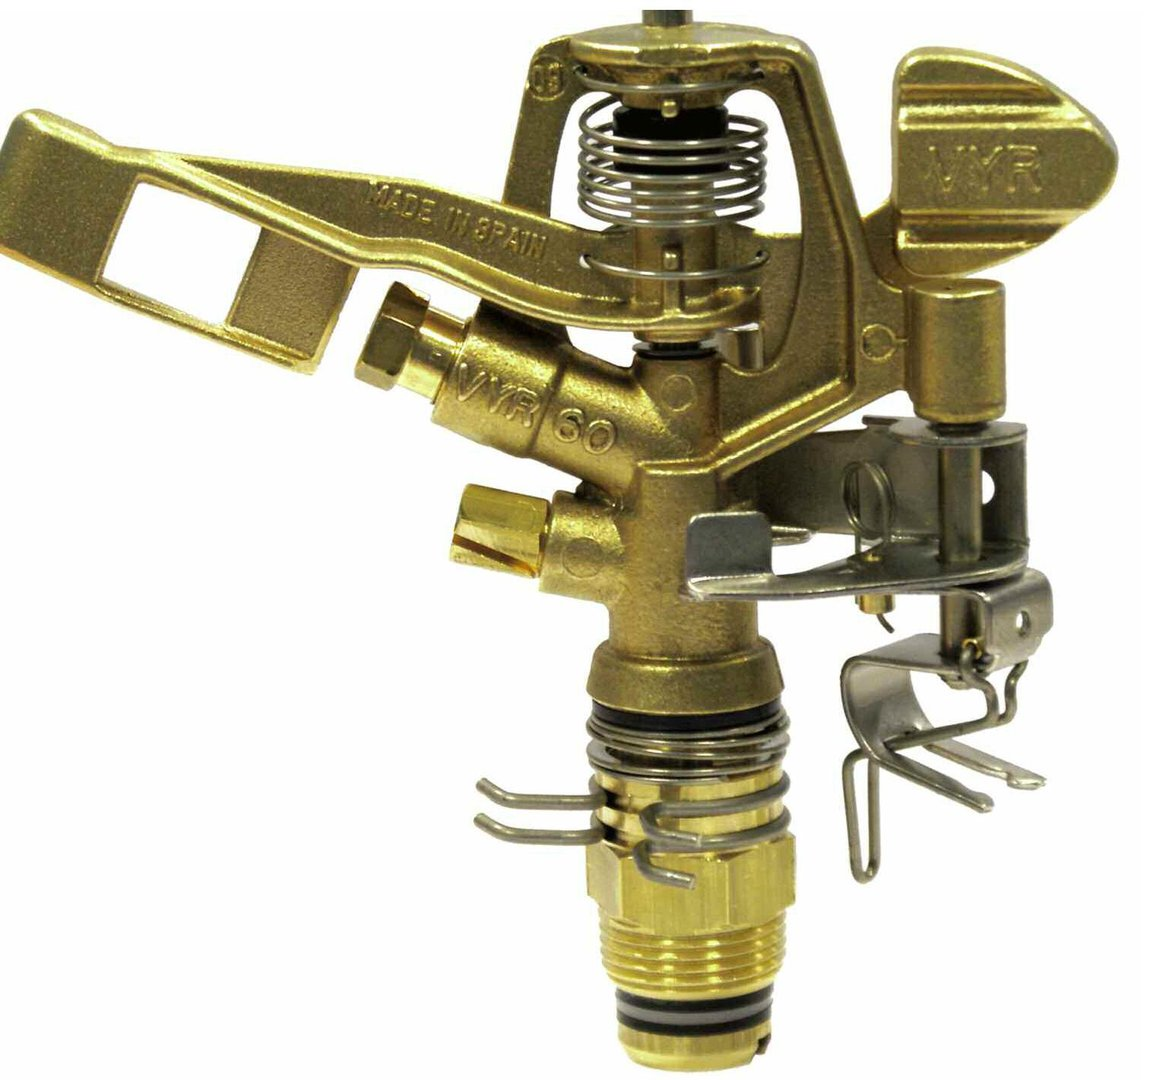 "VYRSA VYR 60 Impact Rotor Sprinkler 3/4"" male thread, part-and full circle"